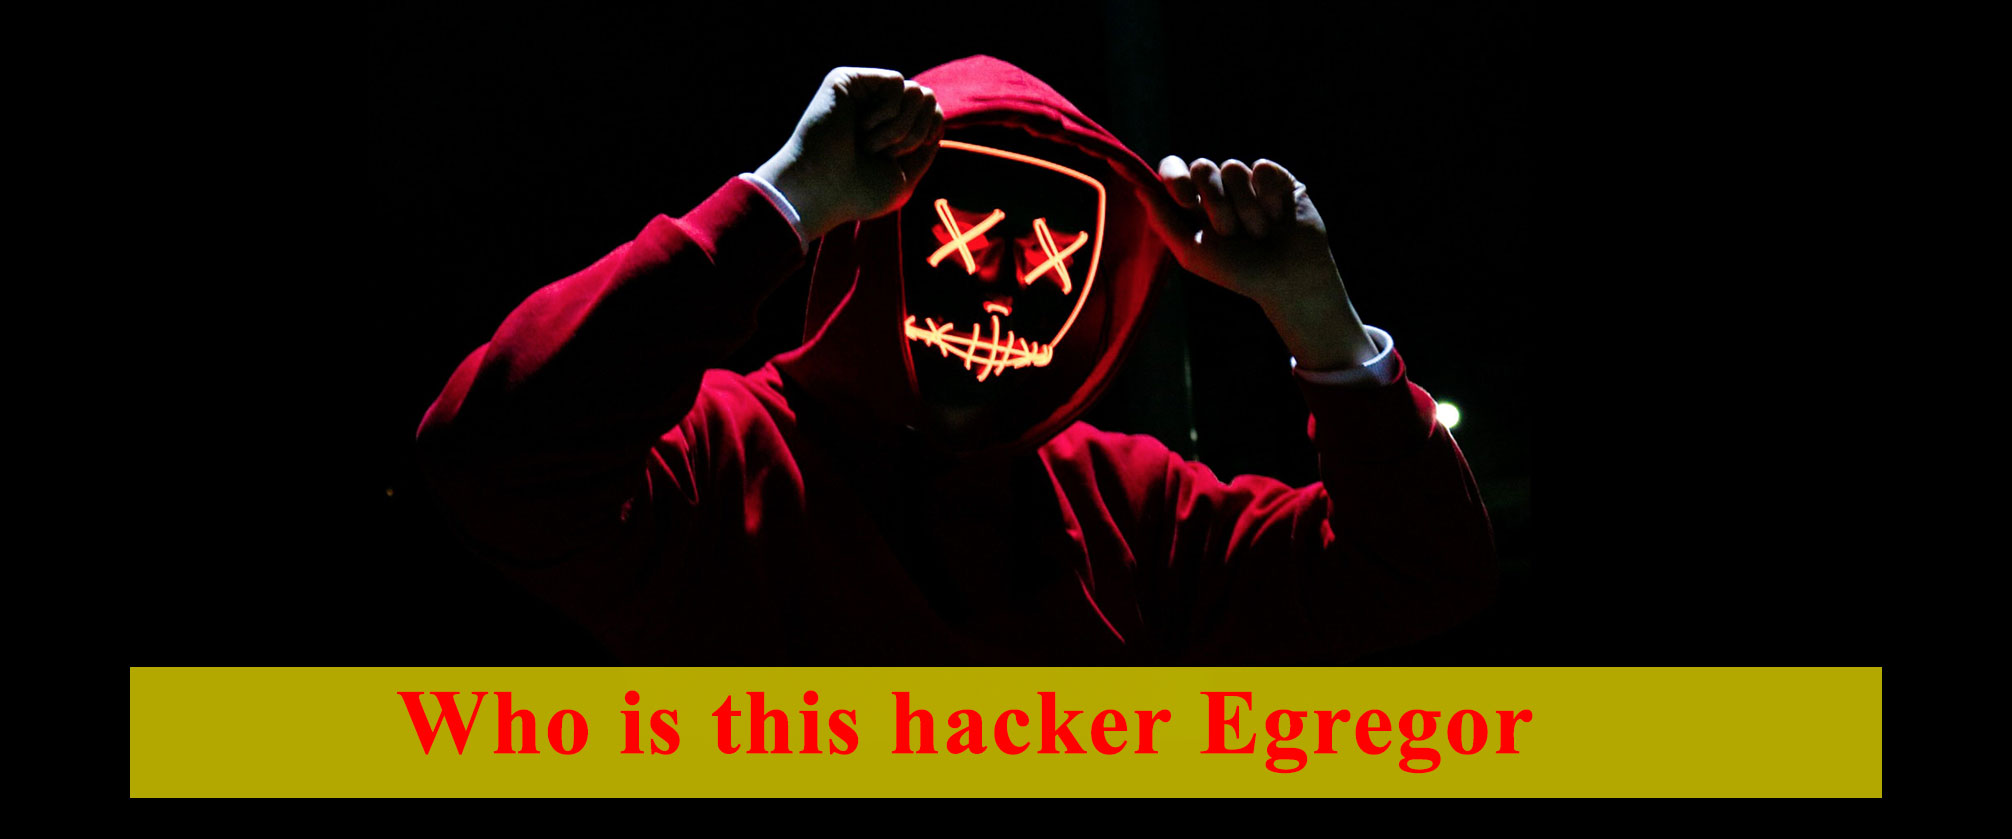 Who is this hacker Egregor?